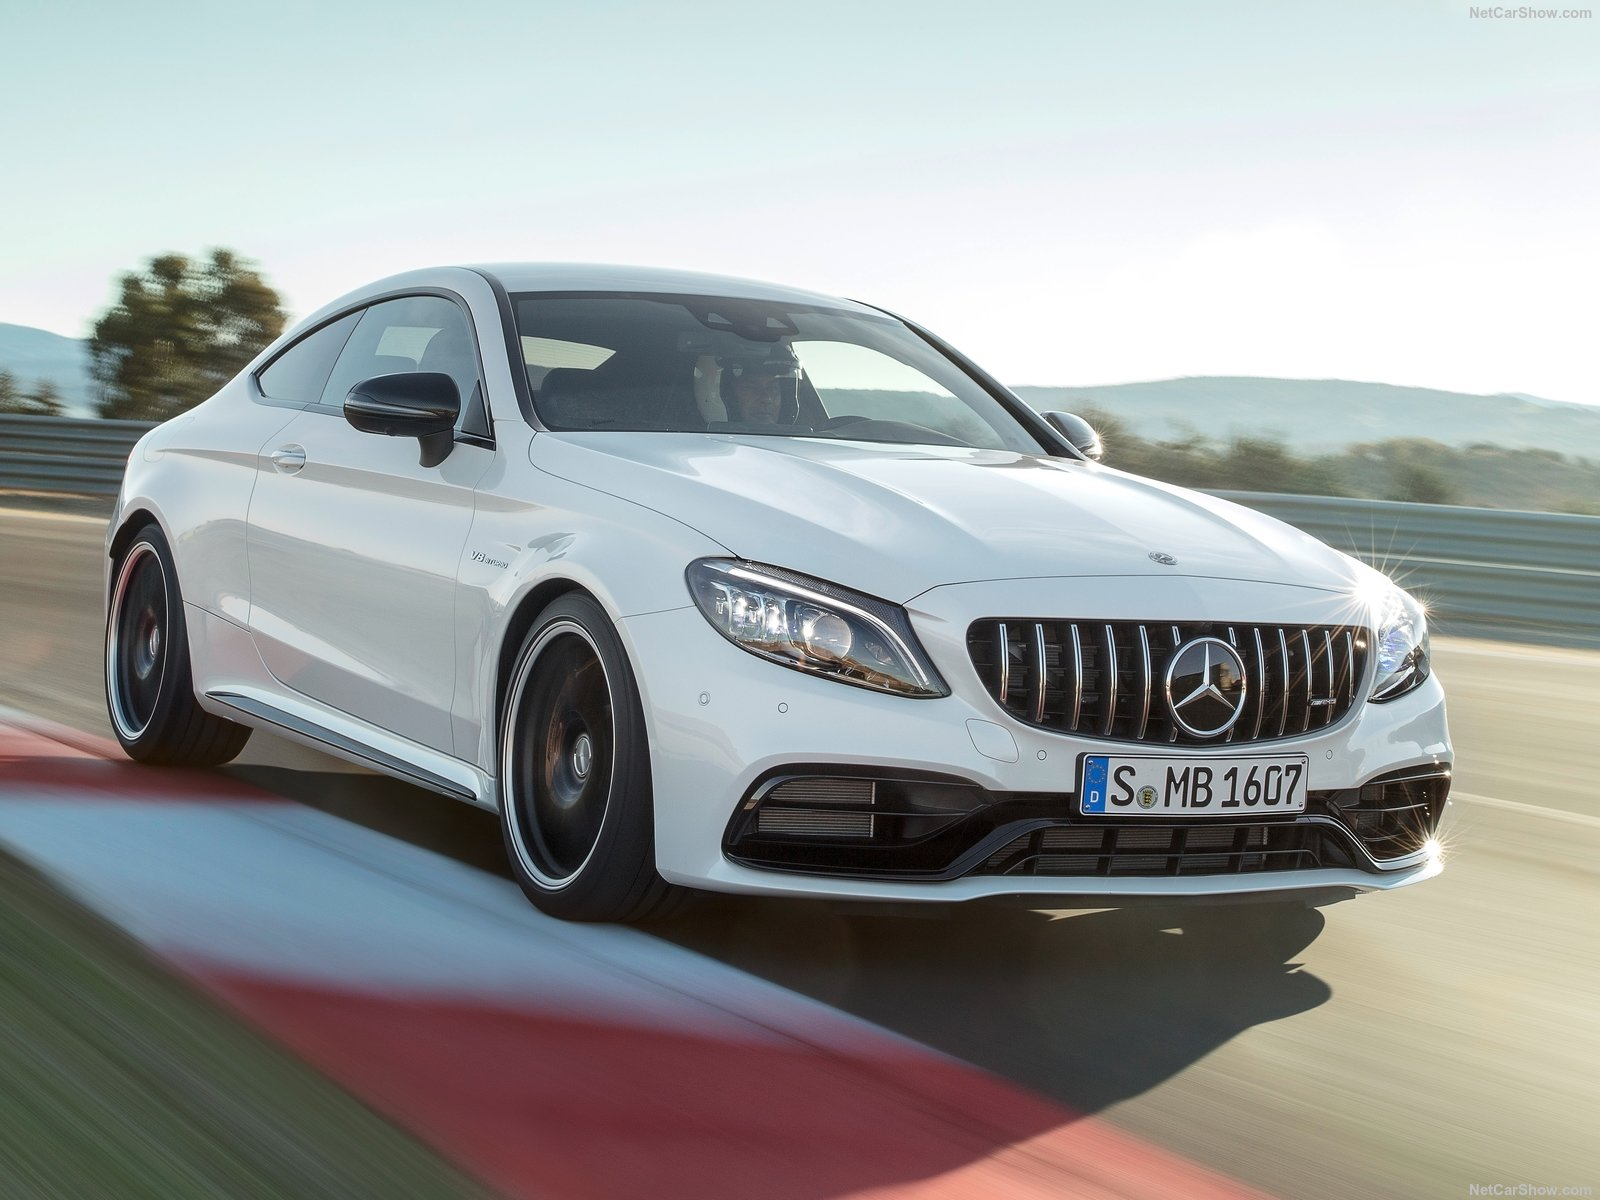 Mercedes-Benz C63 S AMG Coupe photo 187366